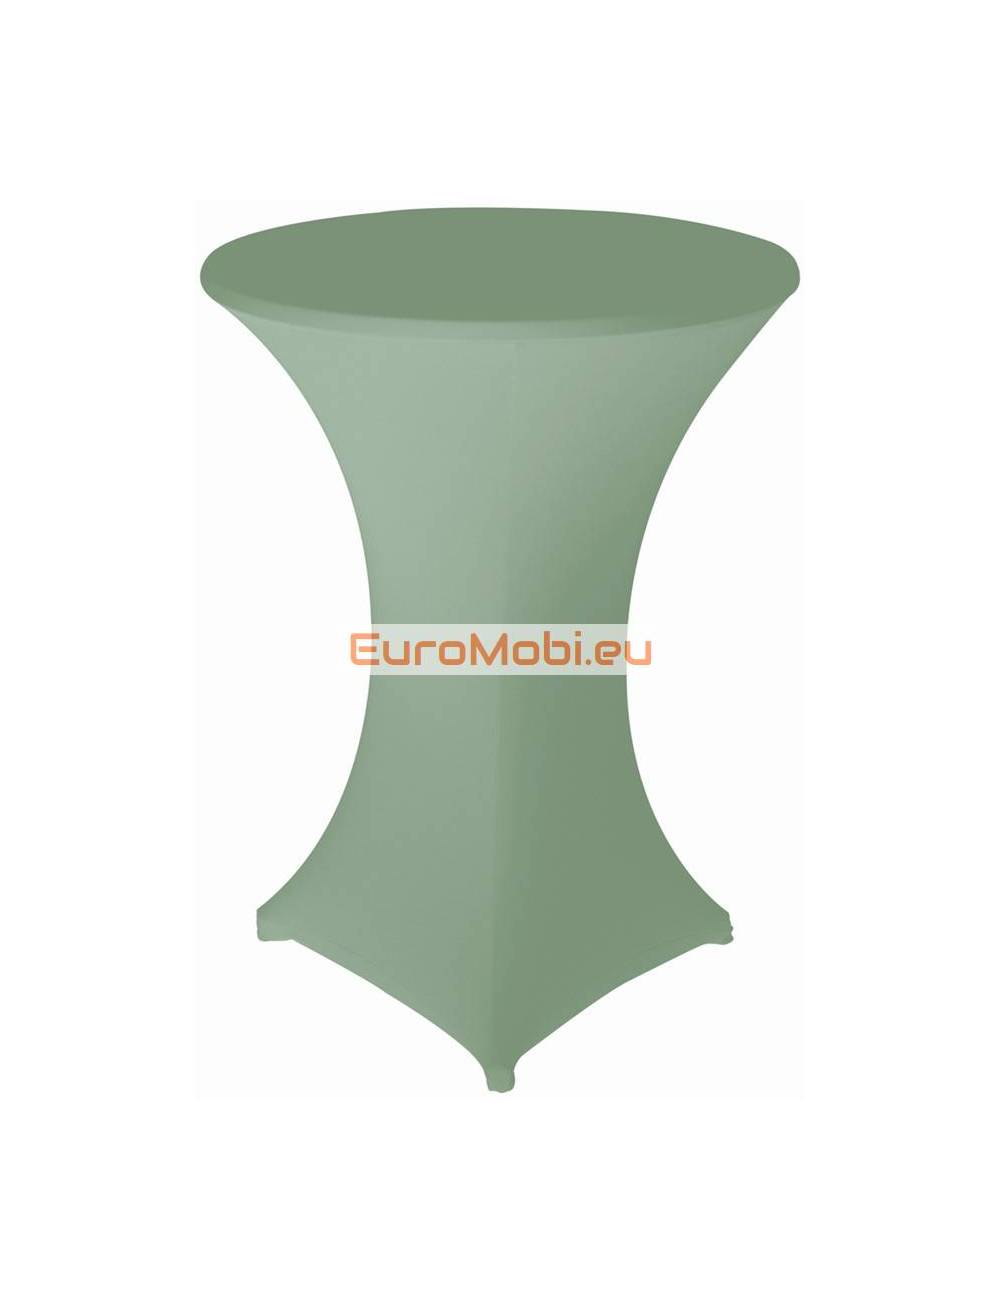 Cover and top stretch for standing table round dark green